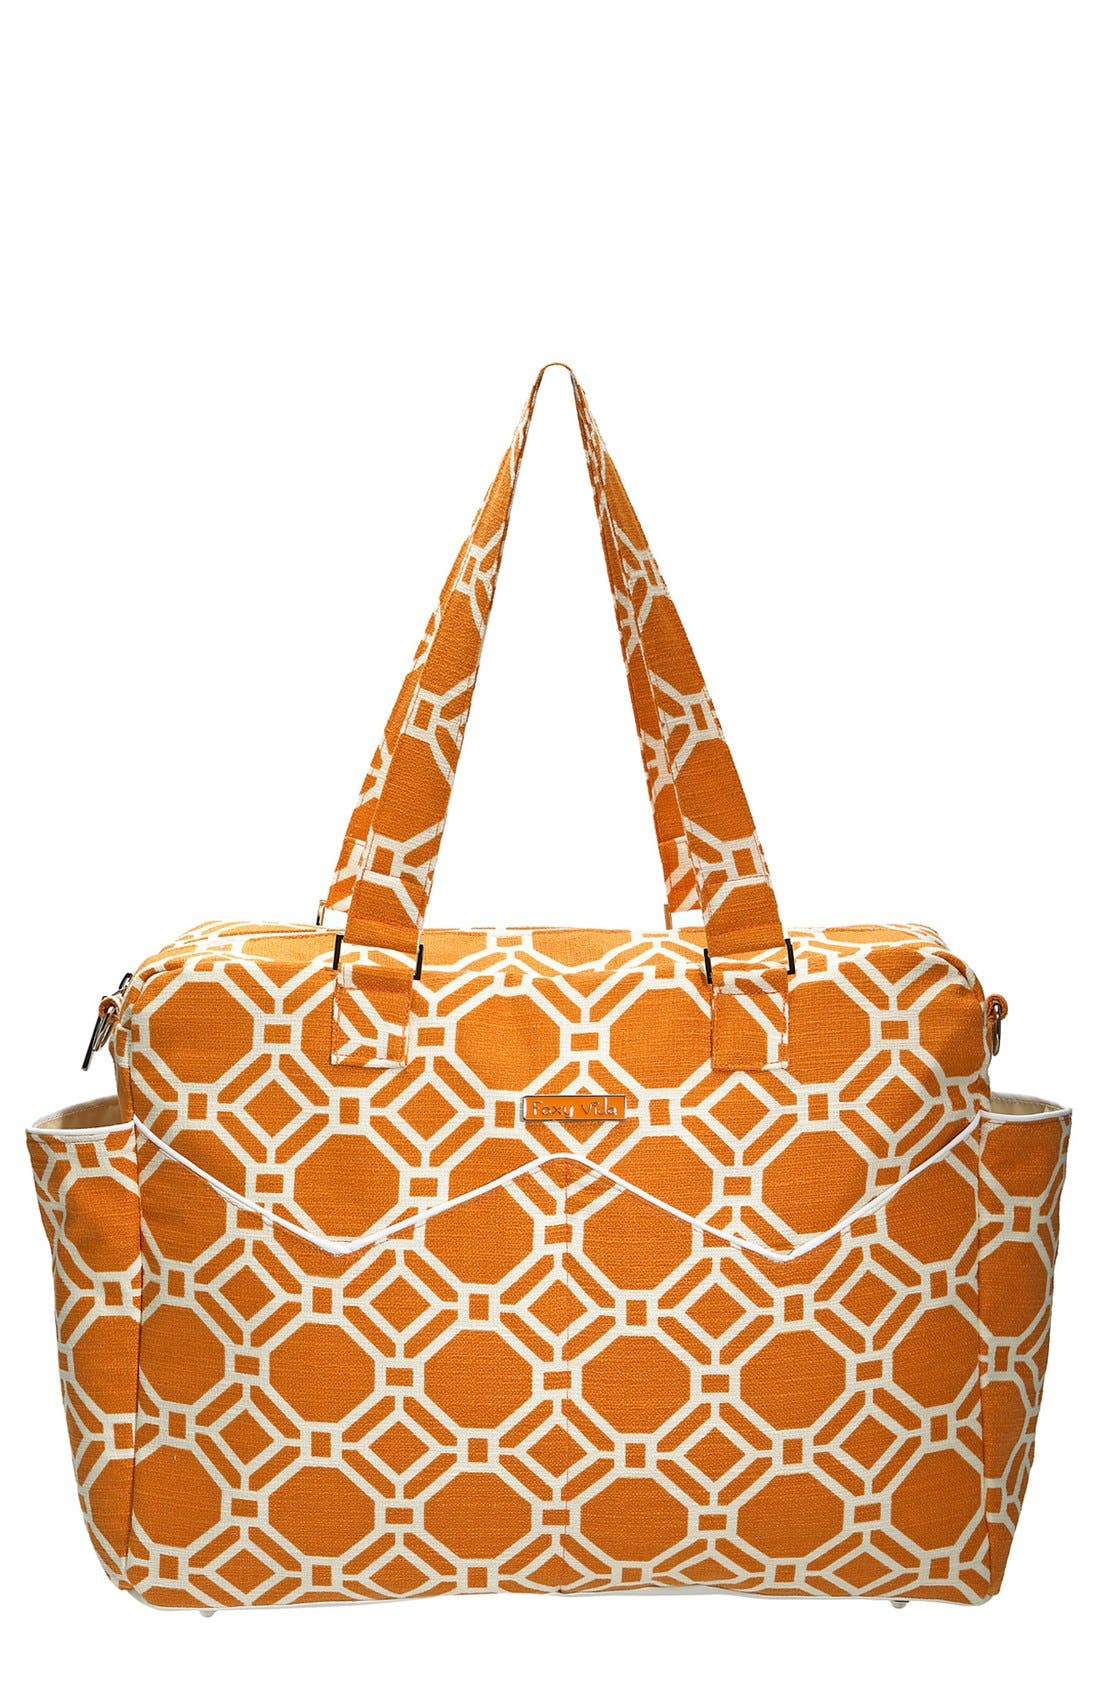 Alternate Image 1 Selected - Foxy Vida 'Lattice' Print Satchel